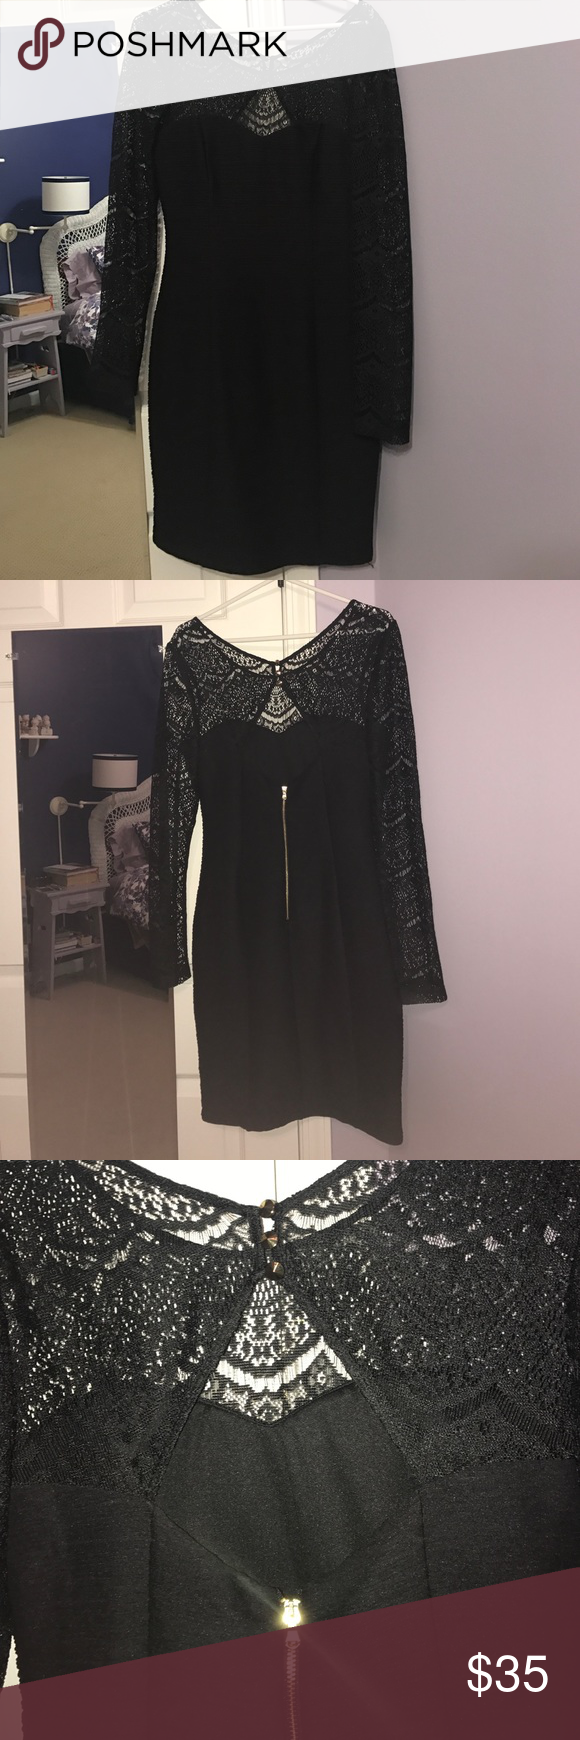 Black bodycon dress tight black dress with gold detailing and lace